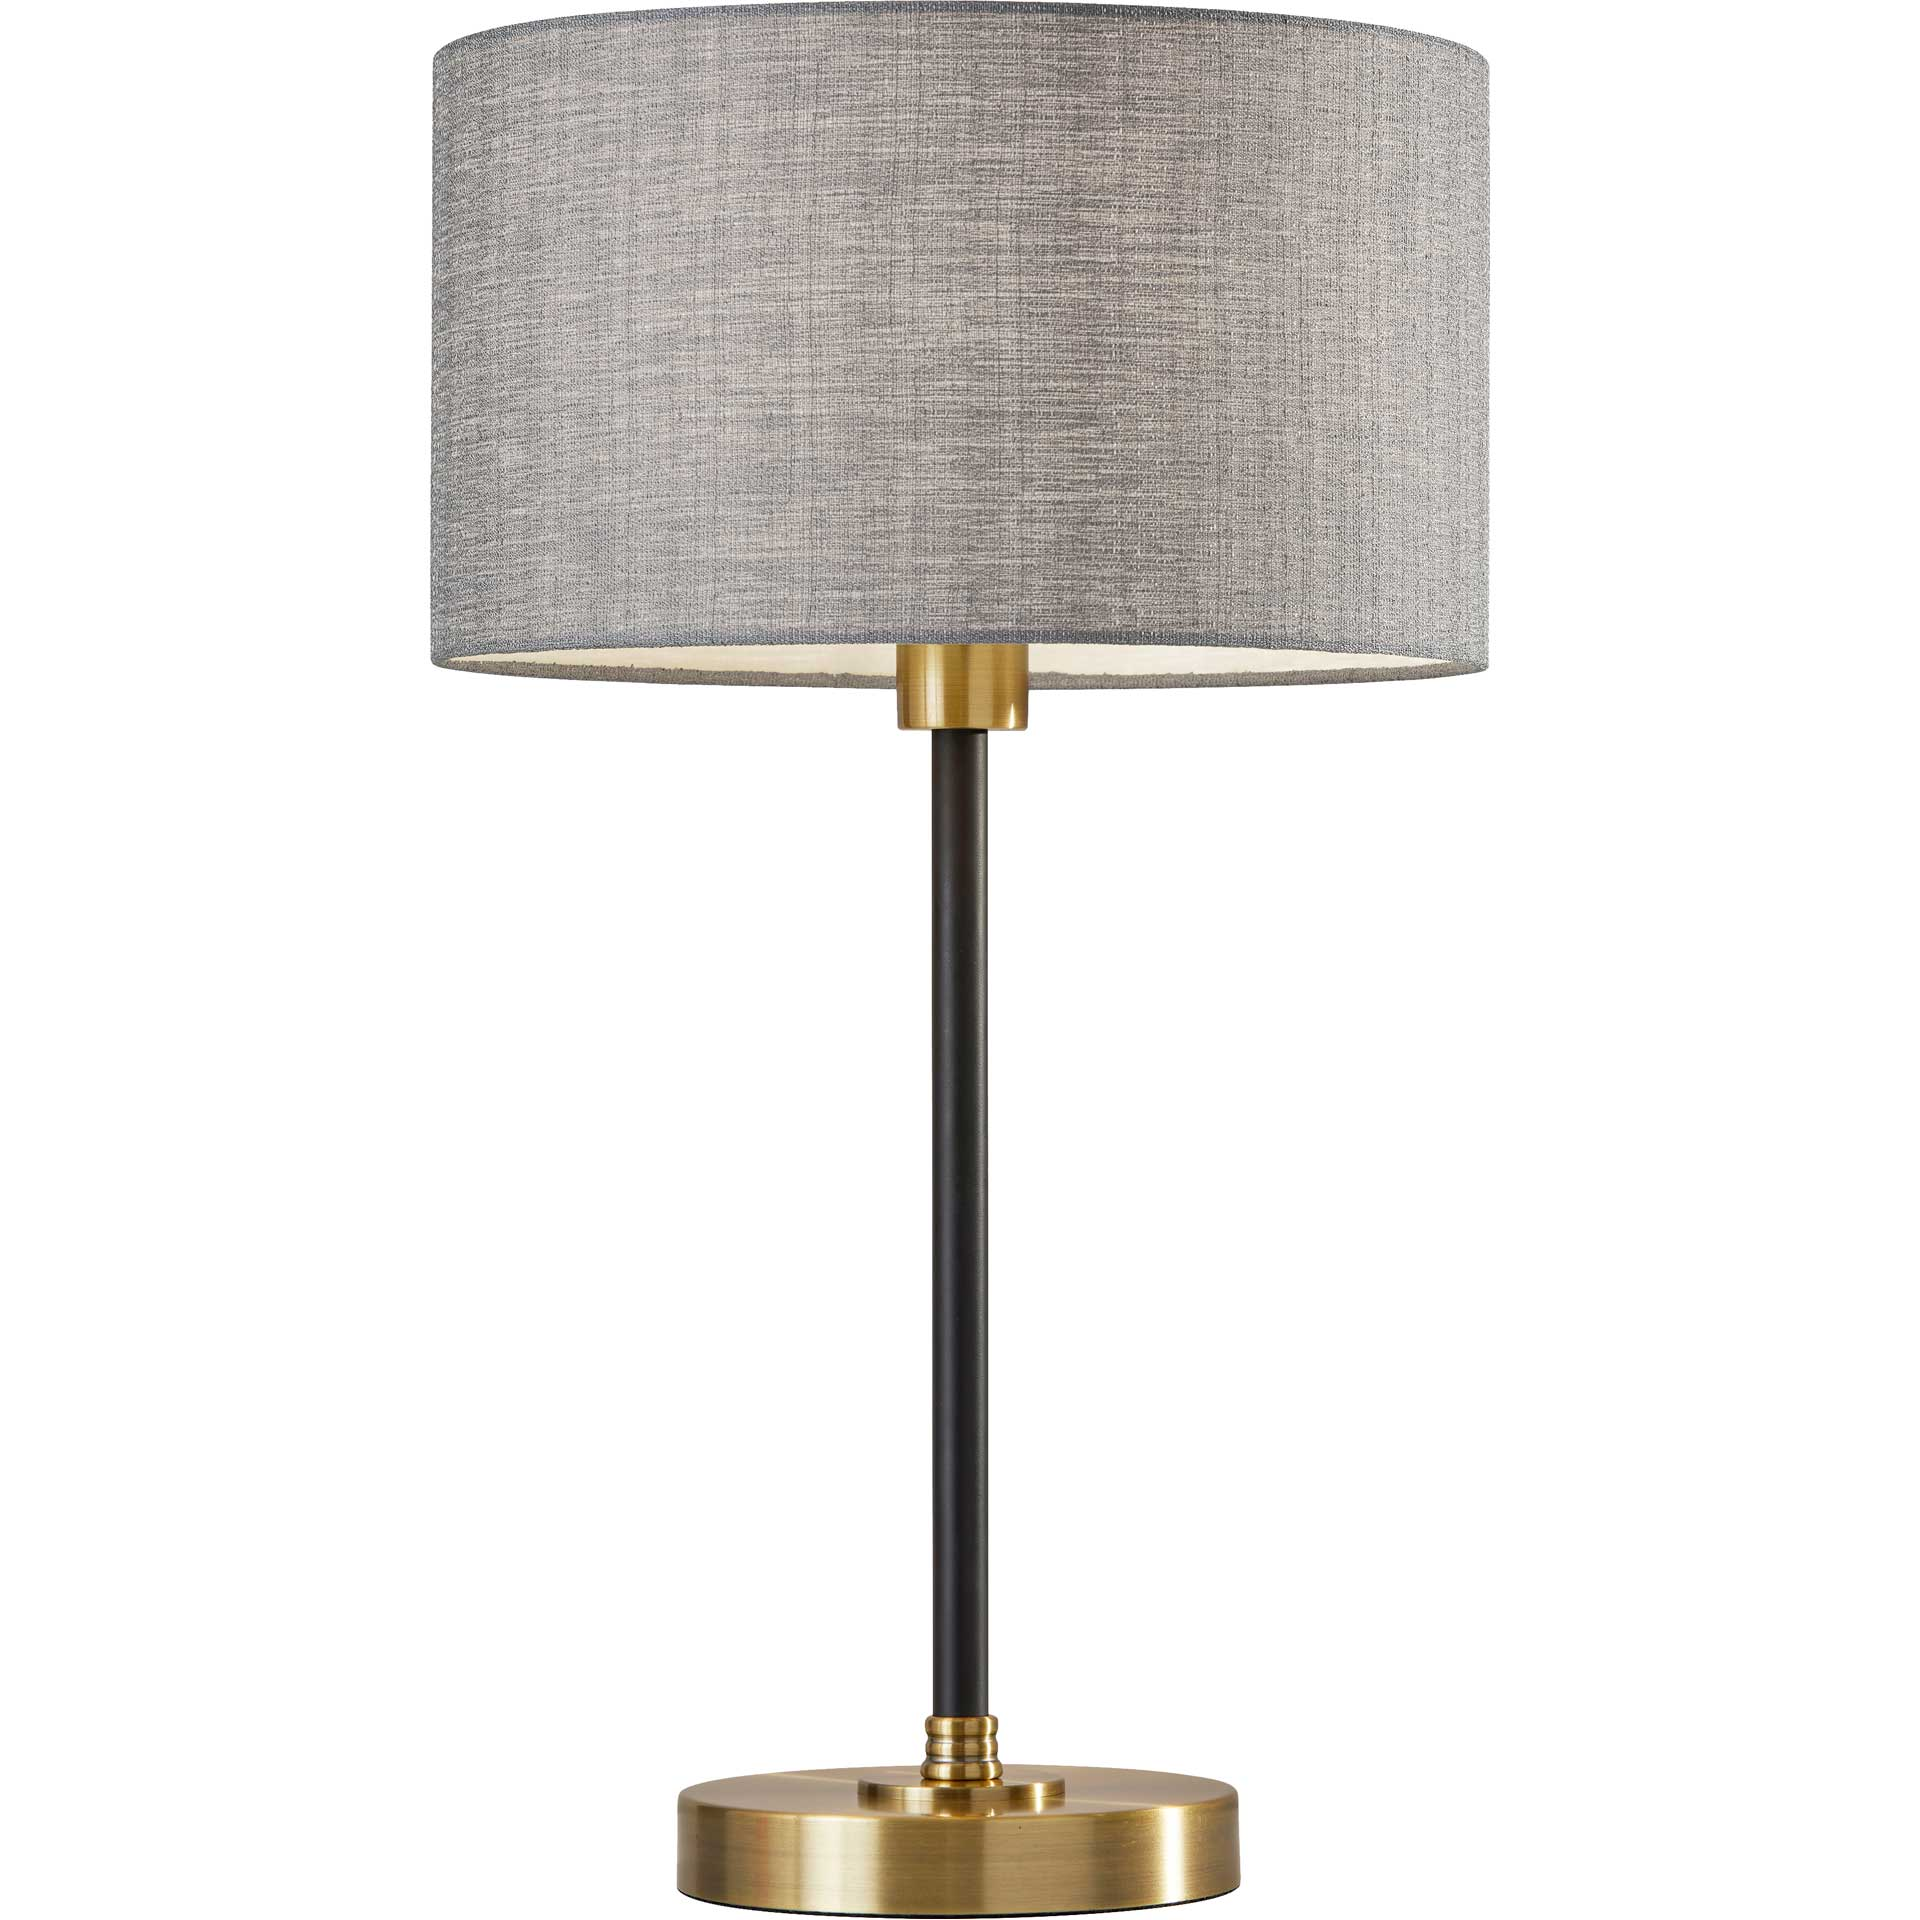 Begles Table Lamp Black/Antique Brass